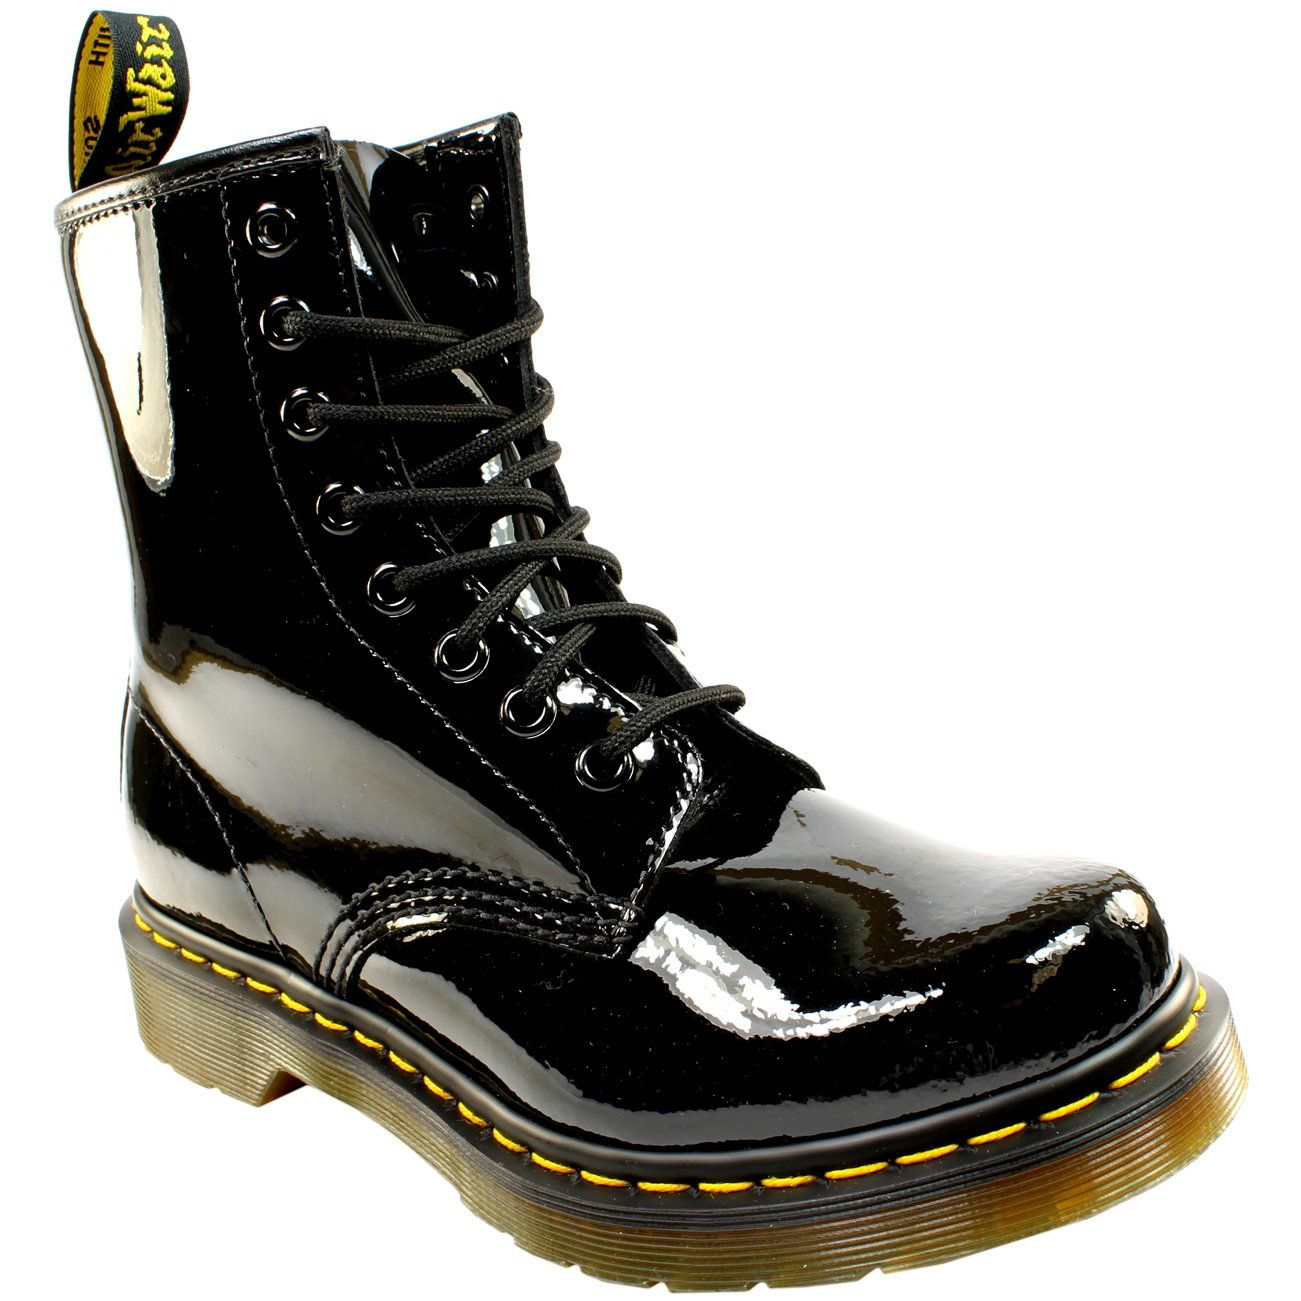 Dr Martens Womens 1460 W 8 Eyelet Patent Lamper Army Combat Lace Up Boot Black 8 More Info Could Be Found At Boots Boot Shoes Women Womens Mid Calf Boots